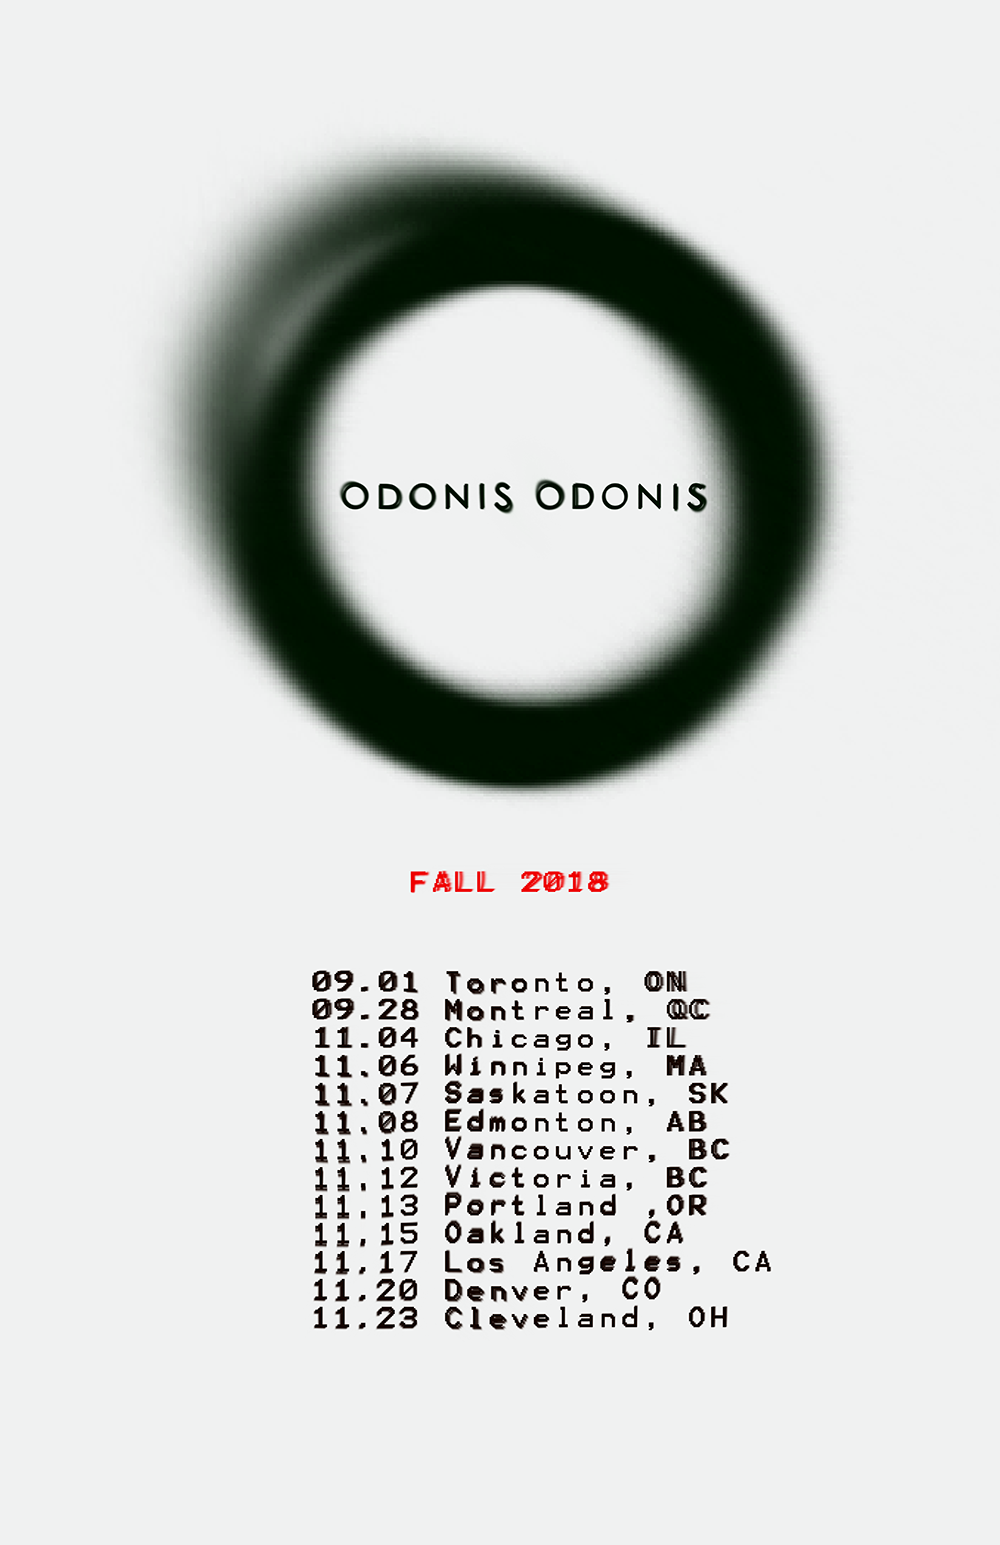 Odonis Odonis Announce Fall North American Tour